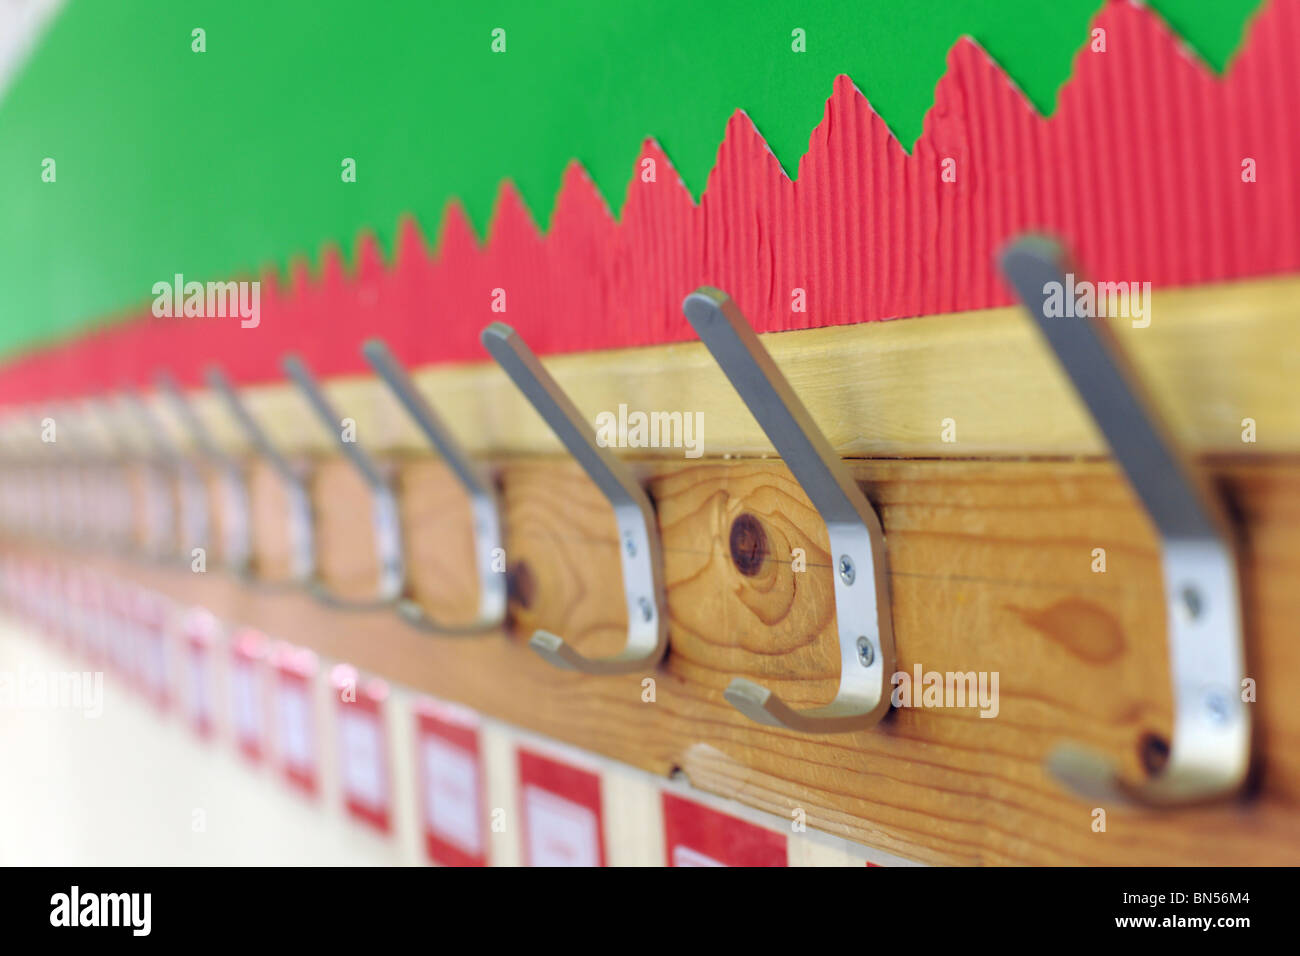 school pegs - Stock Image